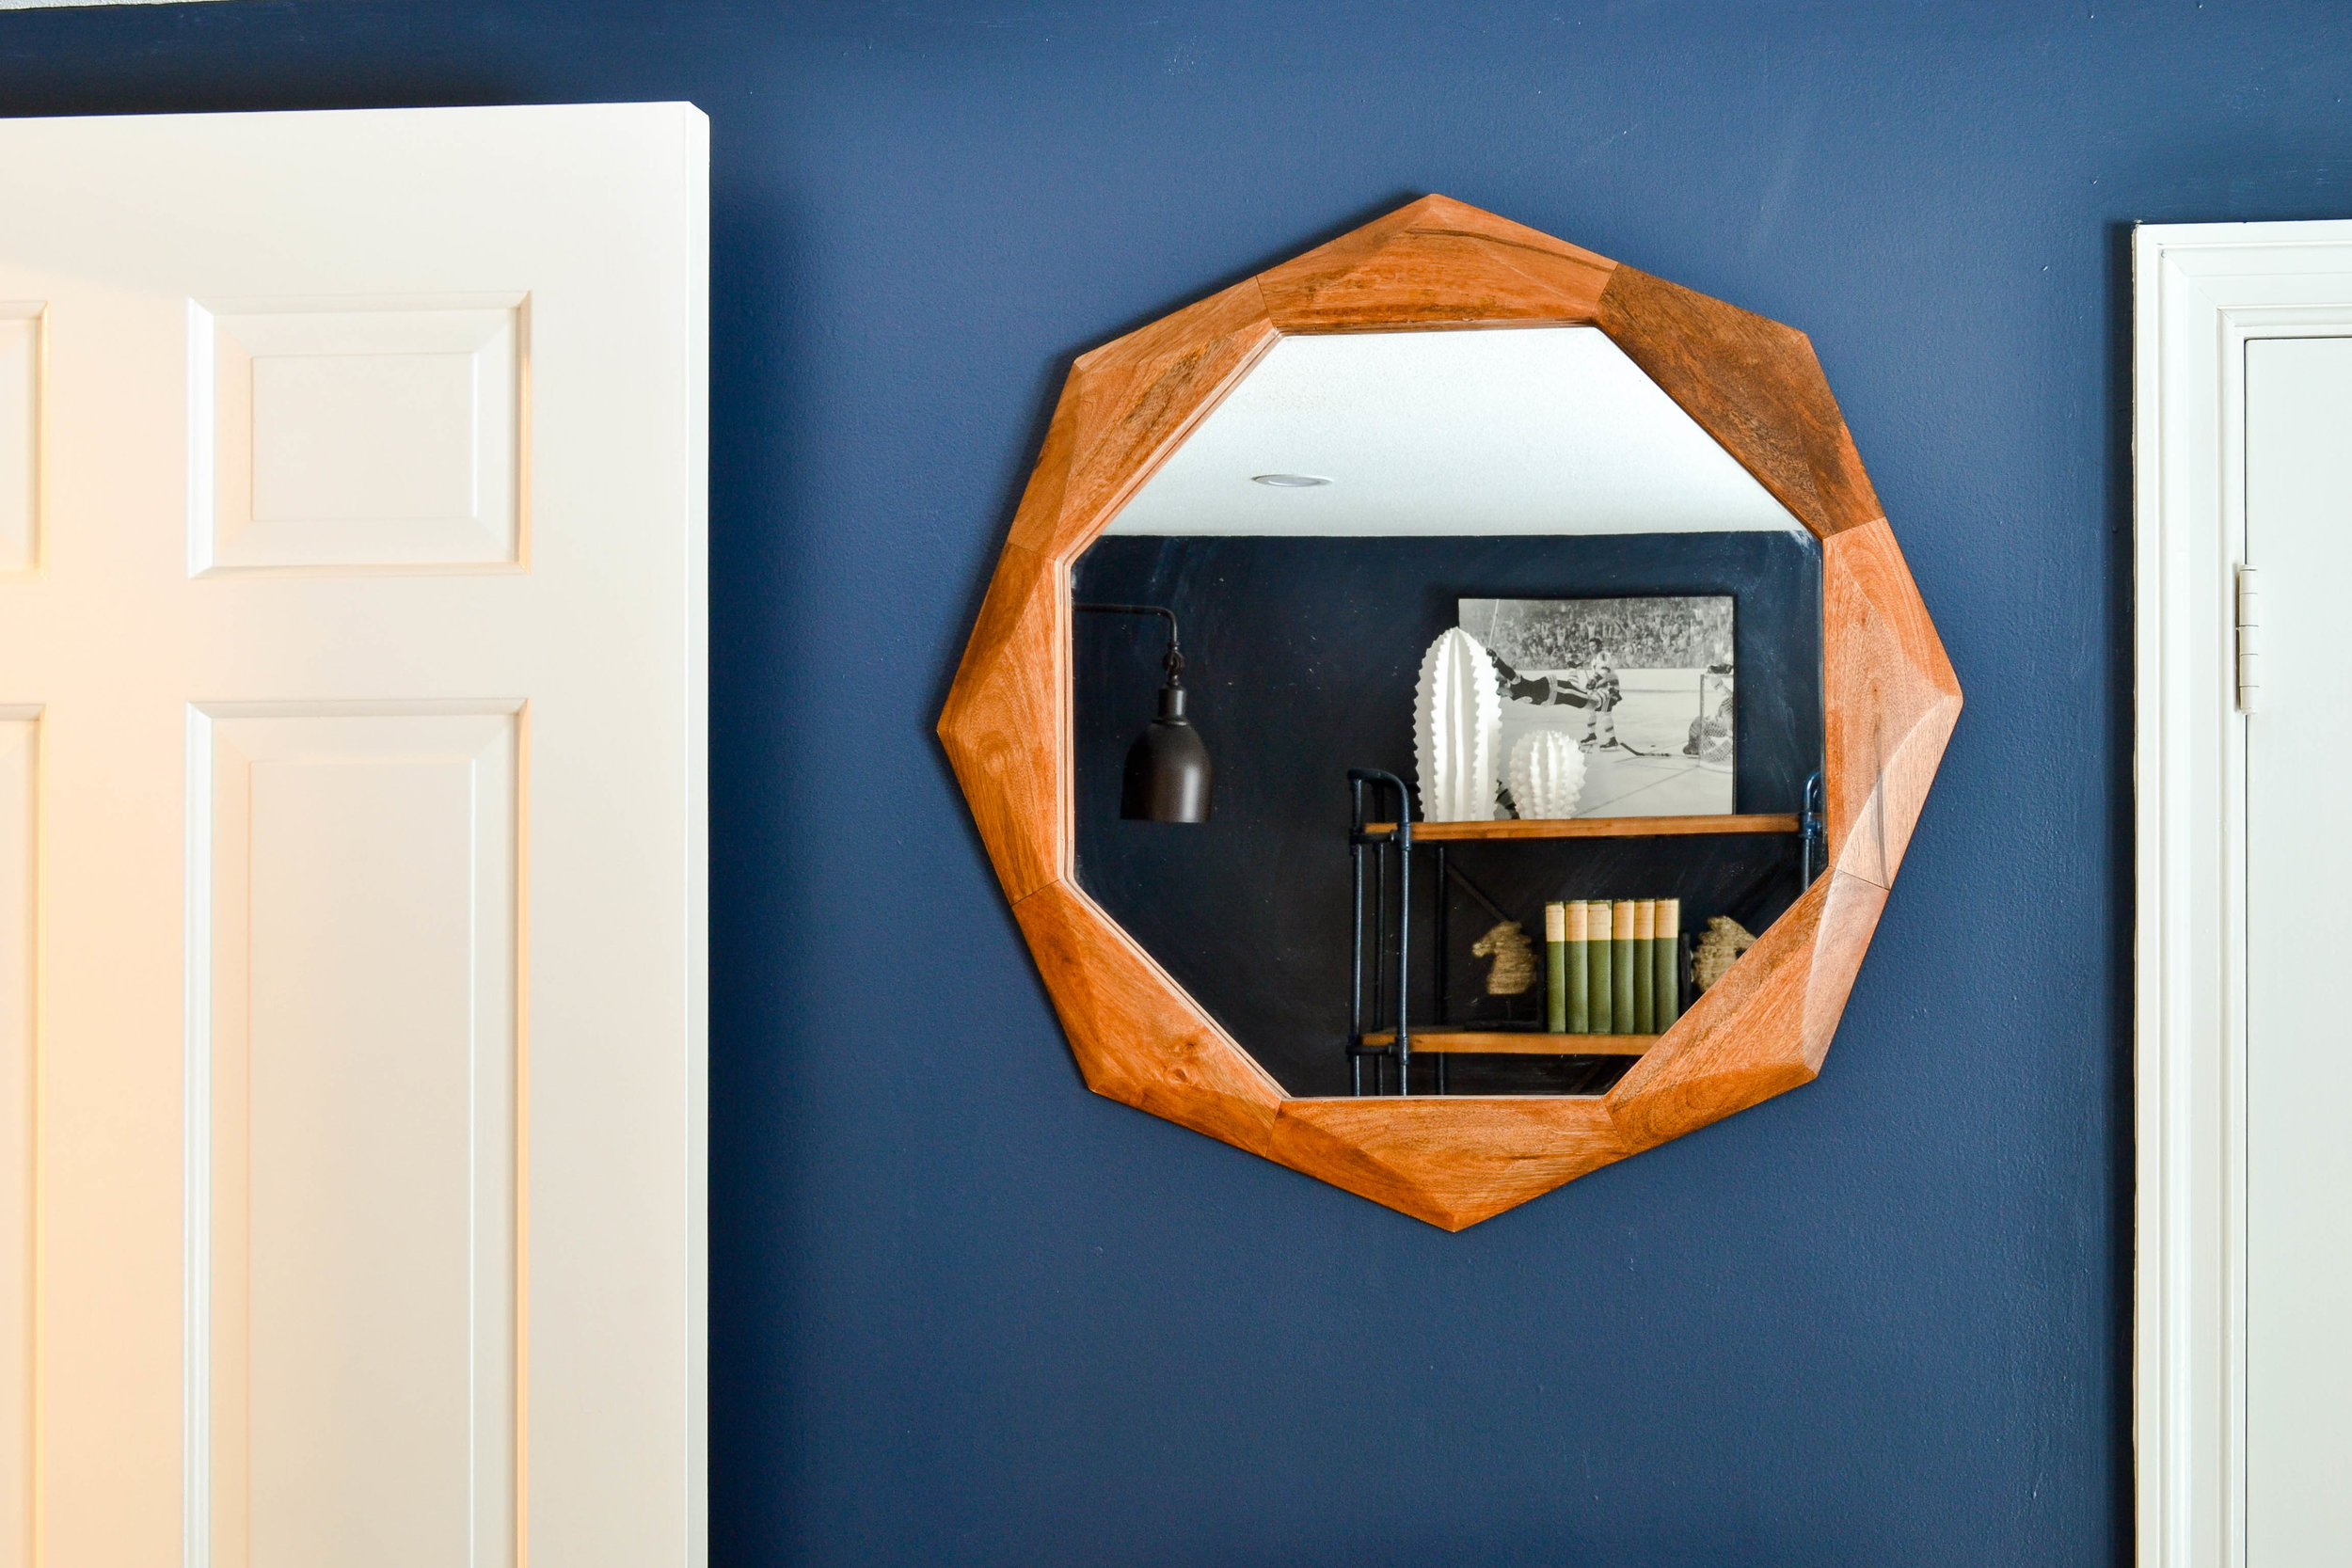 MayberryProject Octagonal mirror